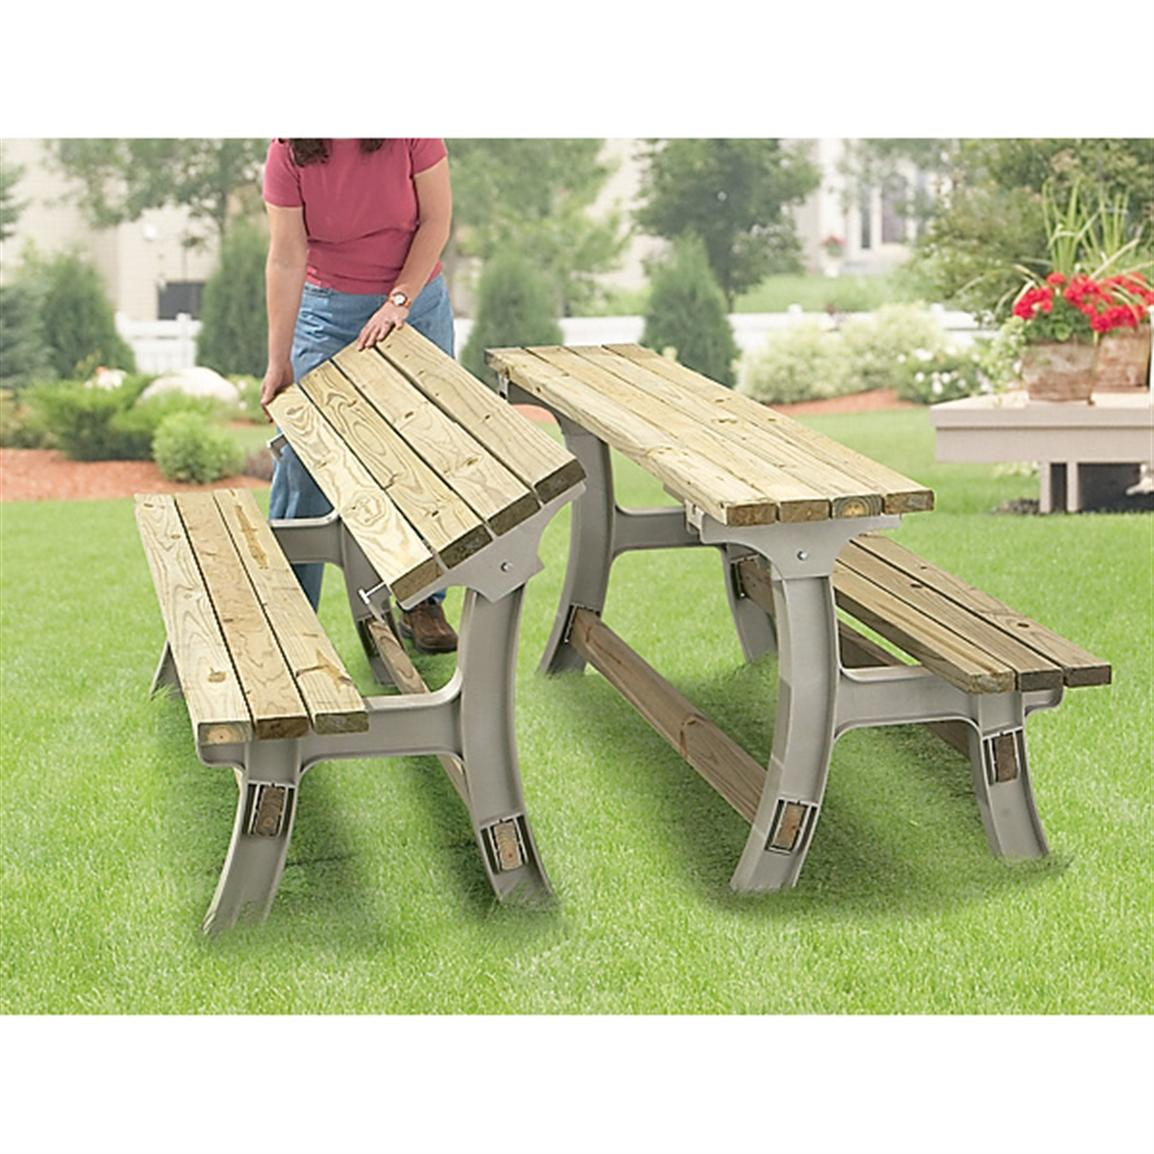 Flip Top Bench Table Frame Set Sand 93942 Patio Furniture At Sportsman 39 S Guide